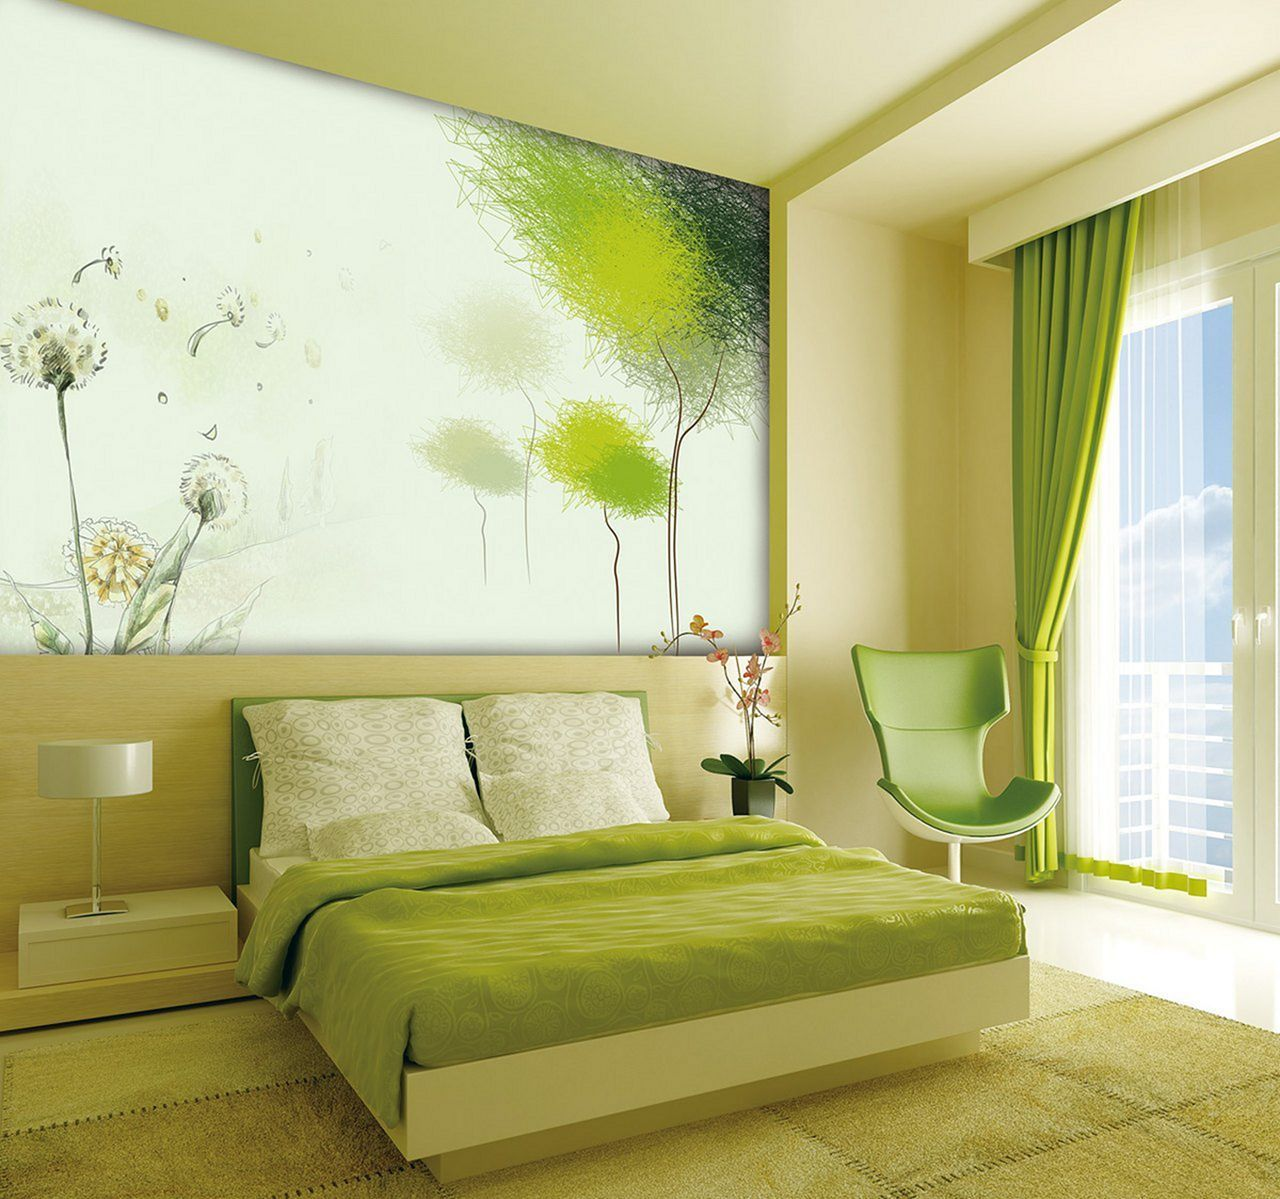 22 Beautiful Bedroom Color Schemes: 22 Beautiful Bedroom Paint Colors That Can Make Sleep More